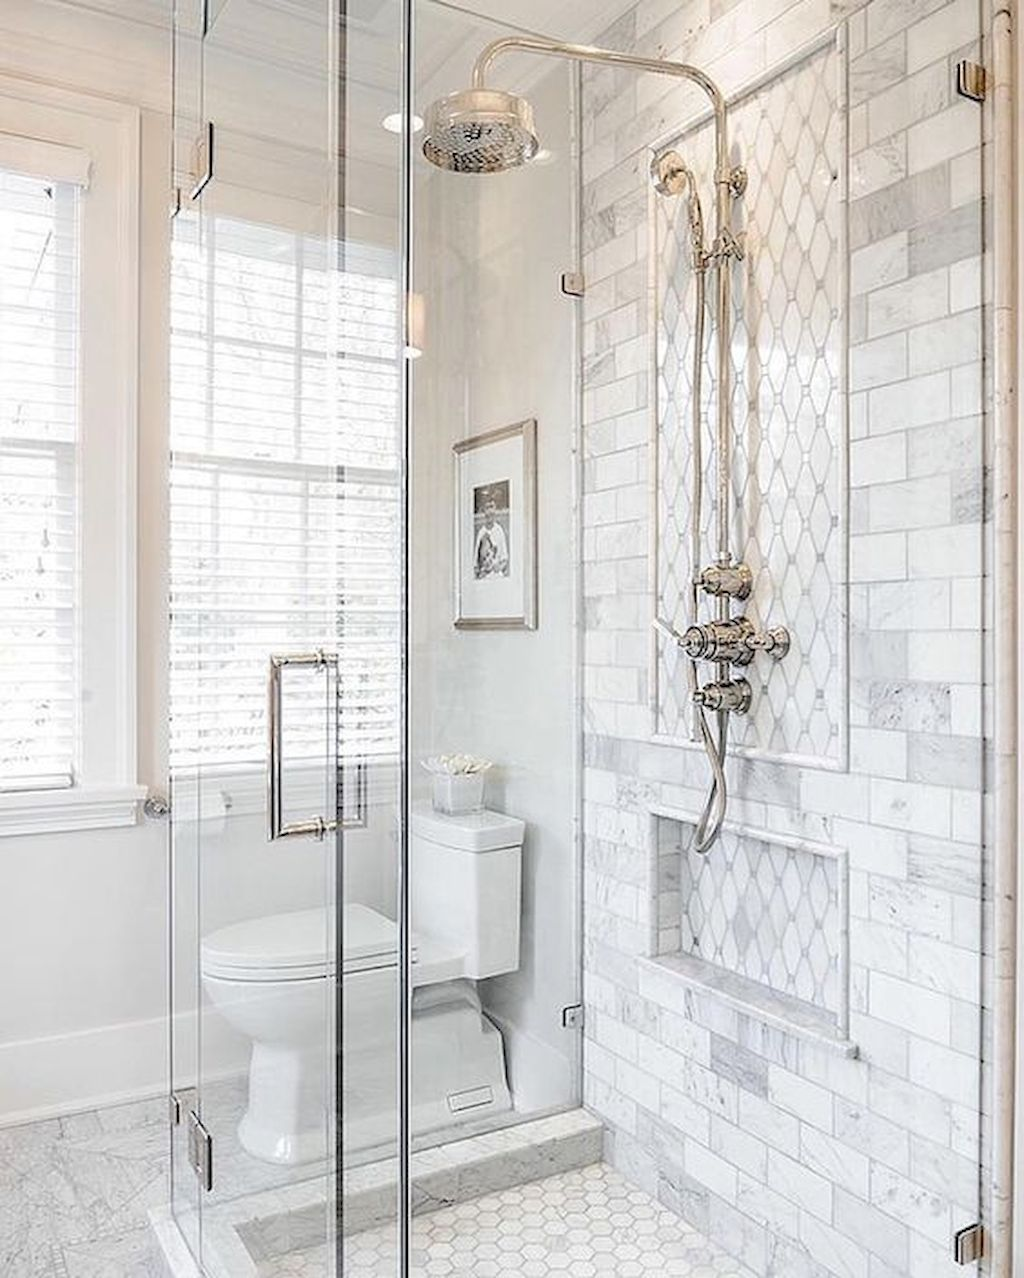 60 Stunning Bathroom Tile Makeover Ideas | Bathroom tiling, Tile ...